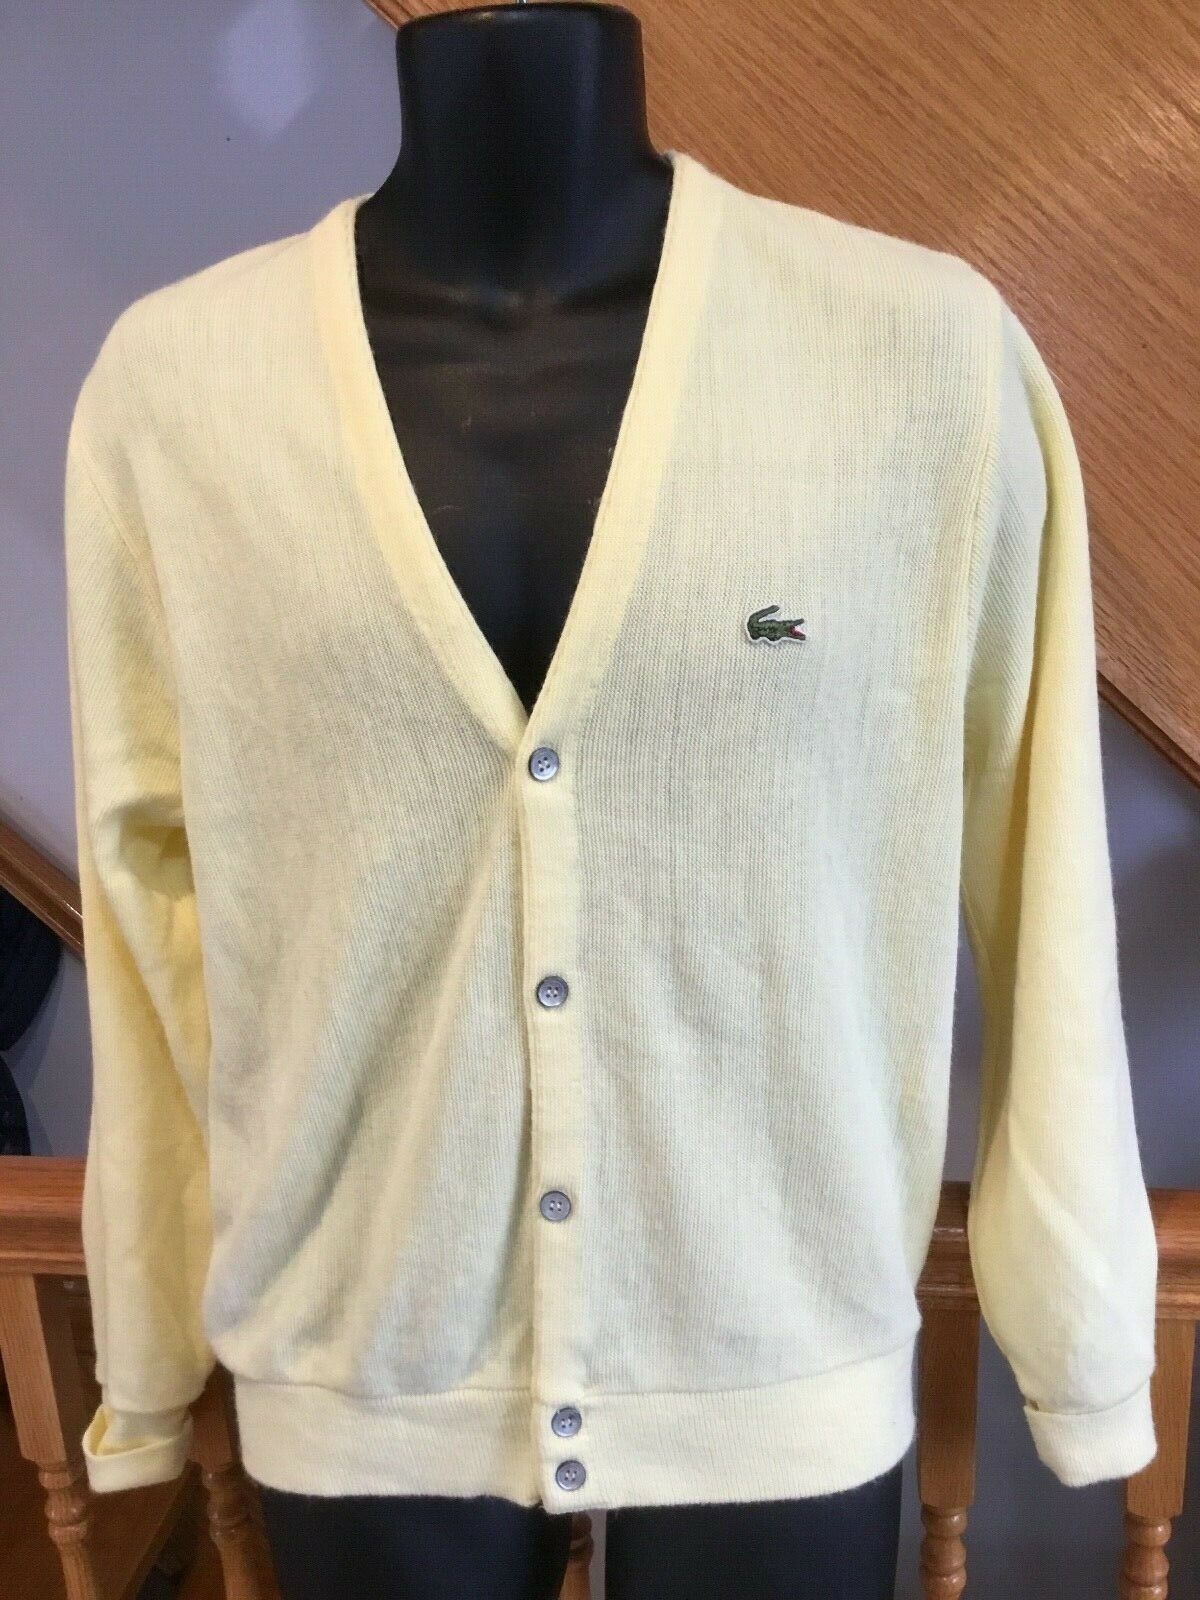 VTG LACOSTE Cardigan Sweater YELLOW Orlon Acrylic Men's SIZE L  MADE IN USA